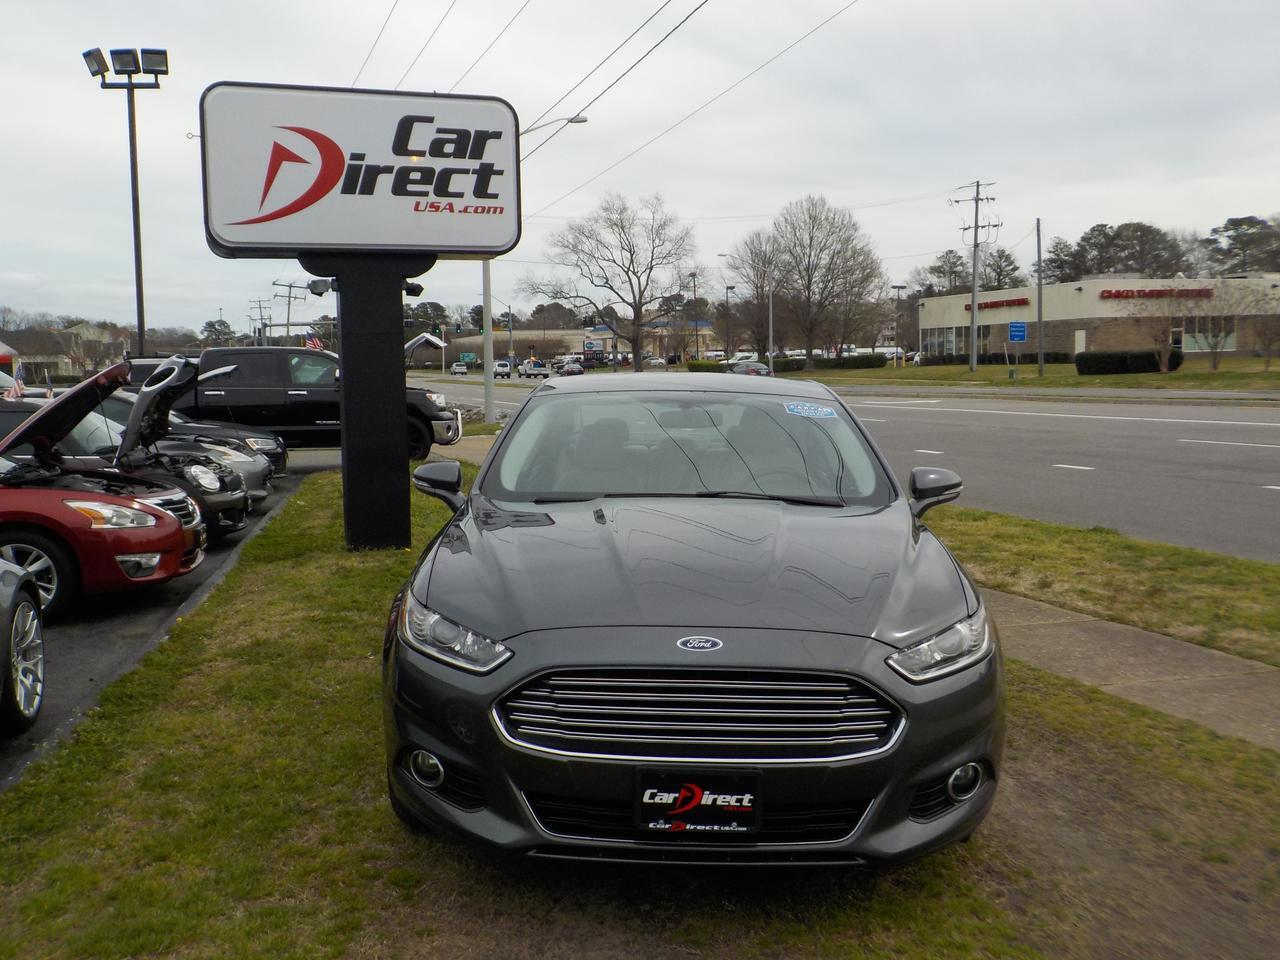 2015 FORD FUSION TITANIUM HYBRID, WARRANTY, BACKUP CAMERA, REMOTE START, BLUETOOTH, SYNC, PARKING SENSORS, LEATHER! Virginia Beach VA